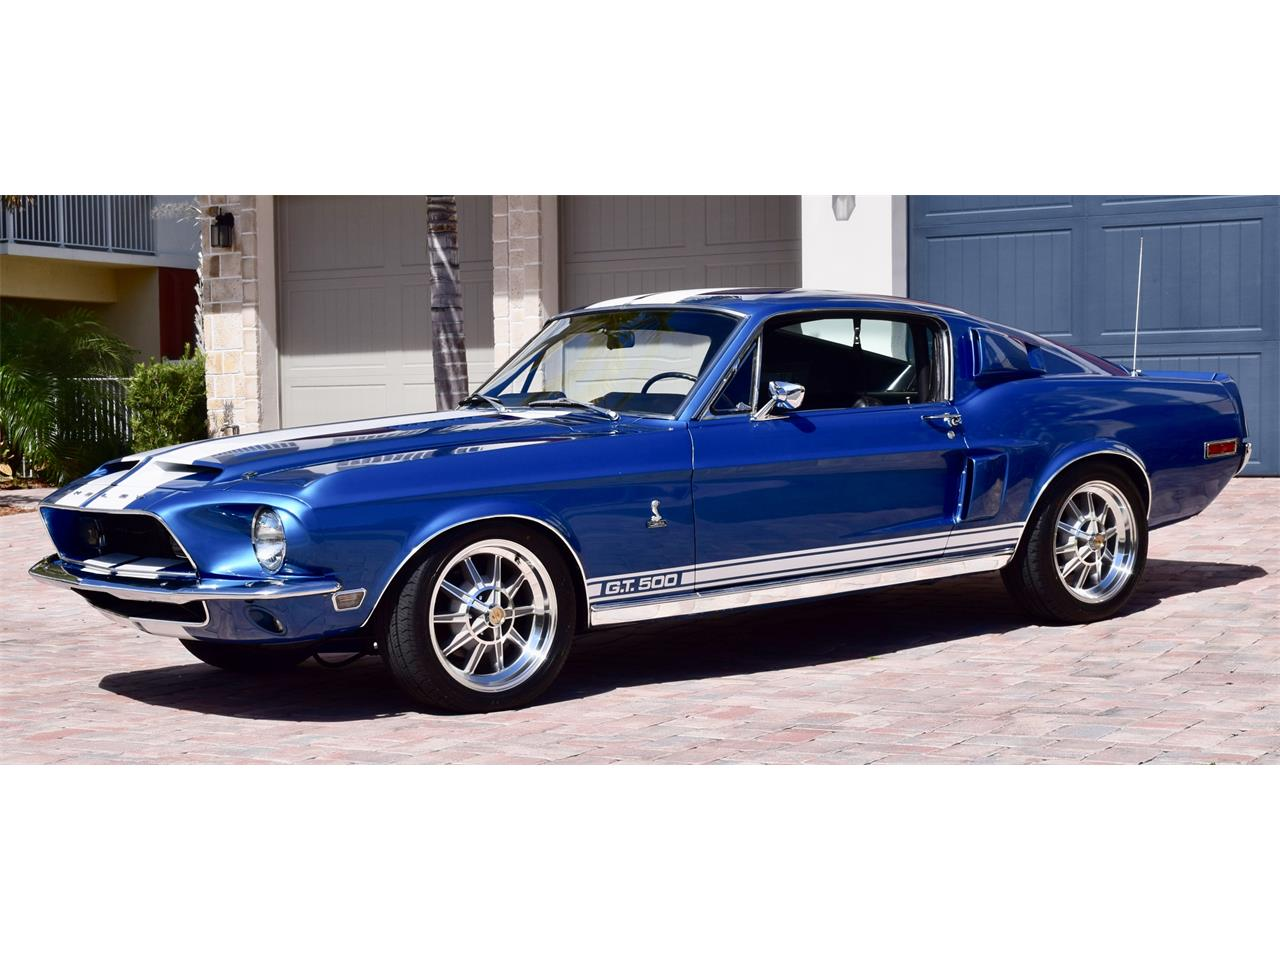 For Sale: 1968 Shelby GT500 in Boca Raton, Florida